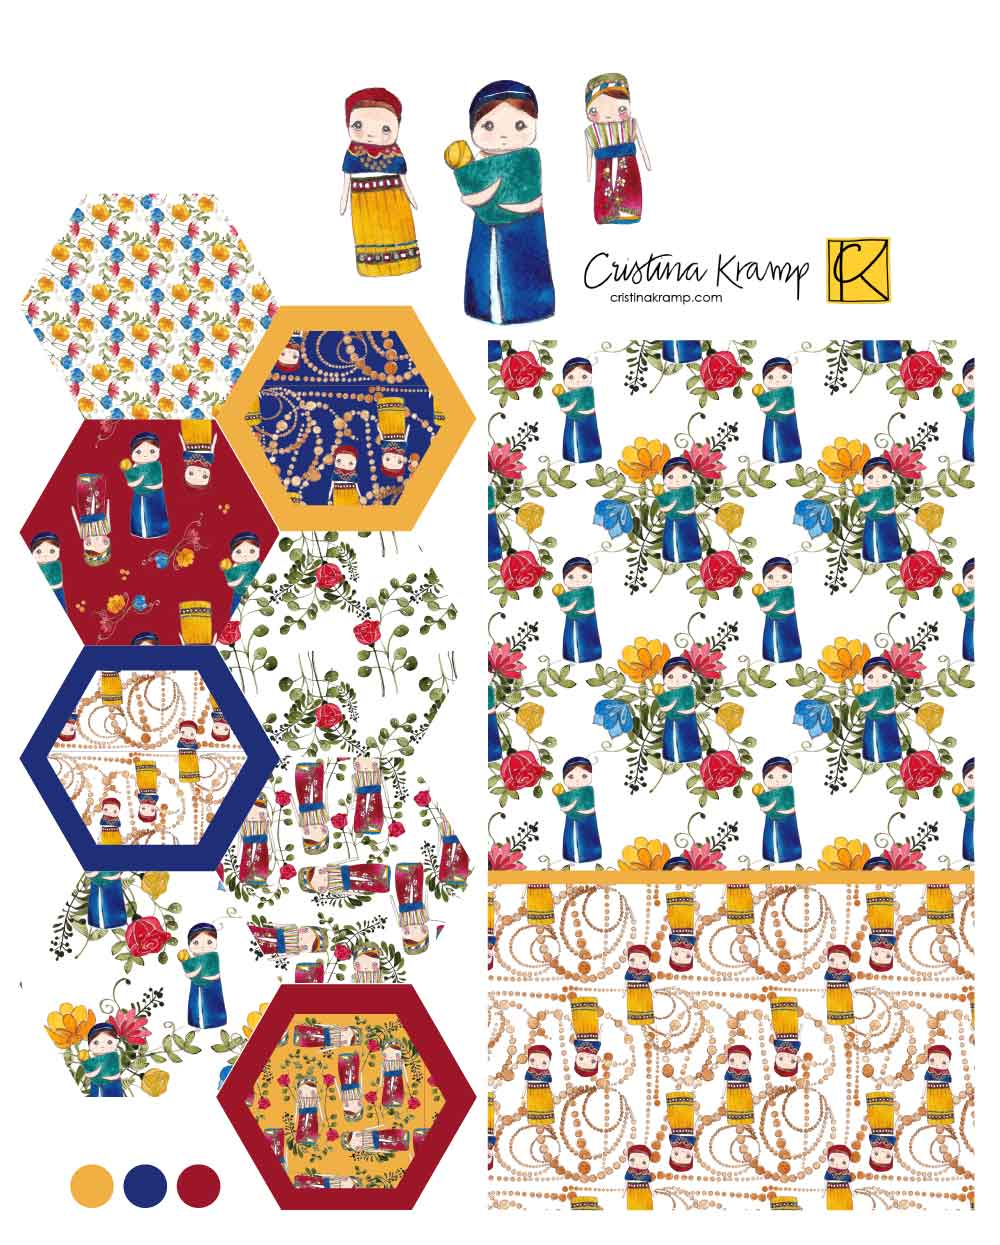 a compilation of the Ecuador collection patterns